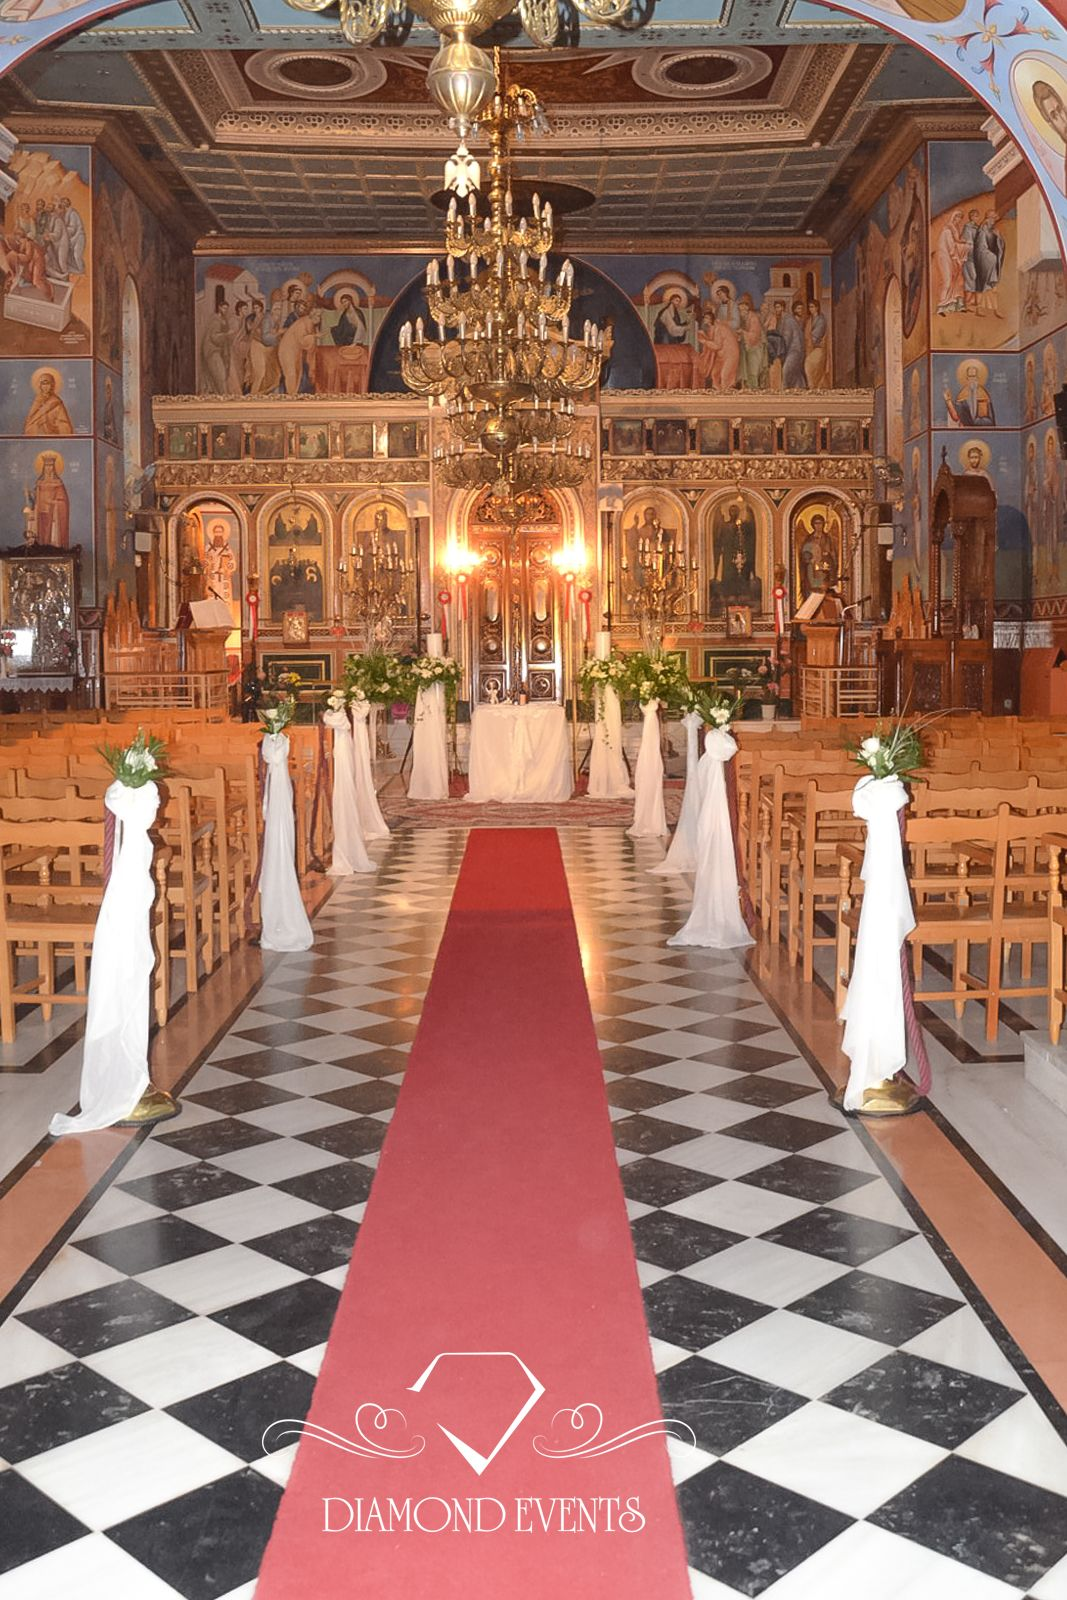 Decorated pillars corridor church with white gauze and